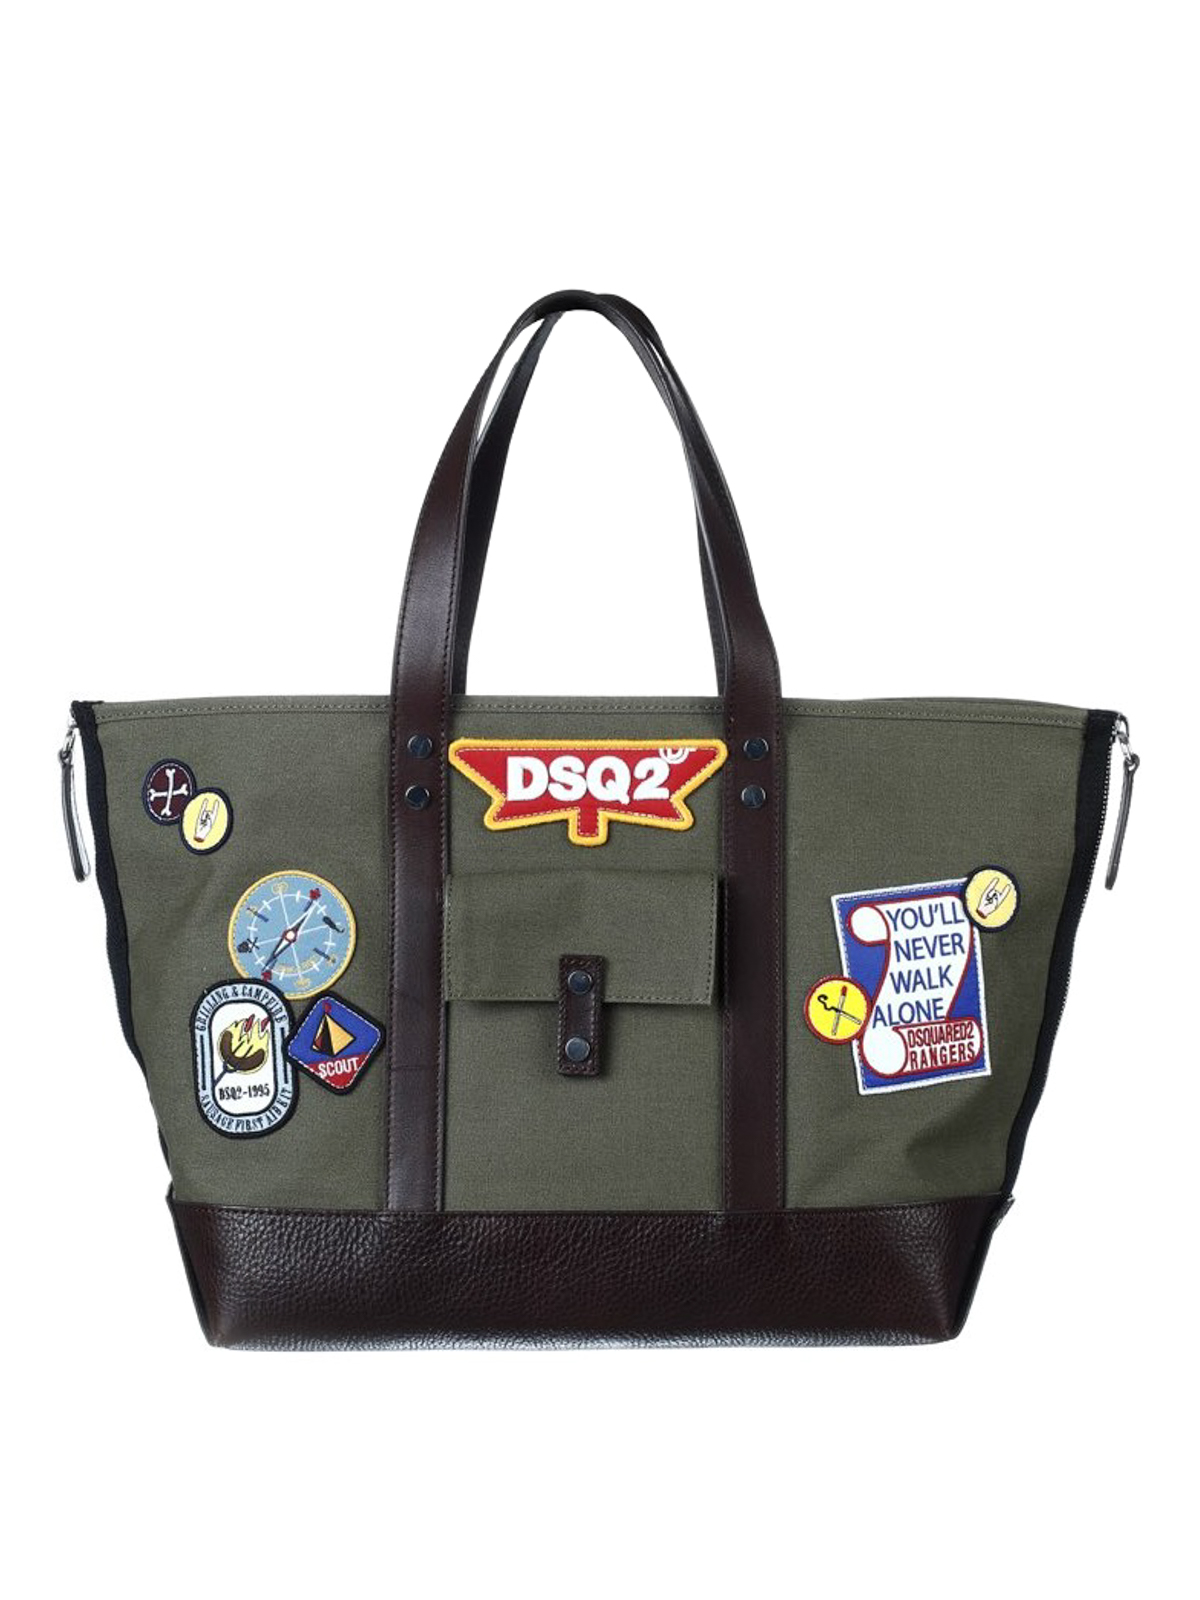 Dsquared2 Bad Scout tote with patches cNBIeEH5